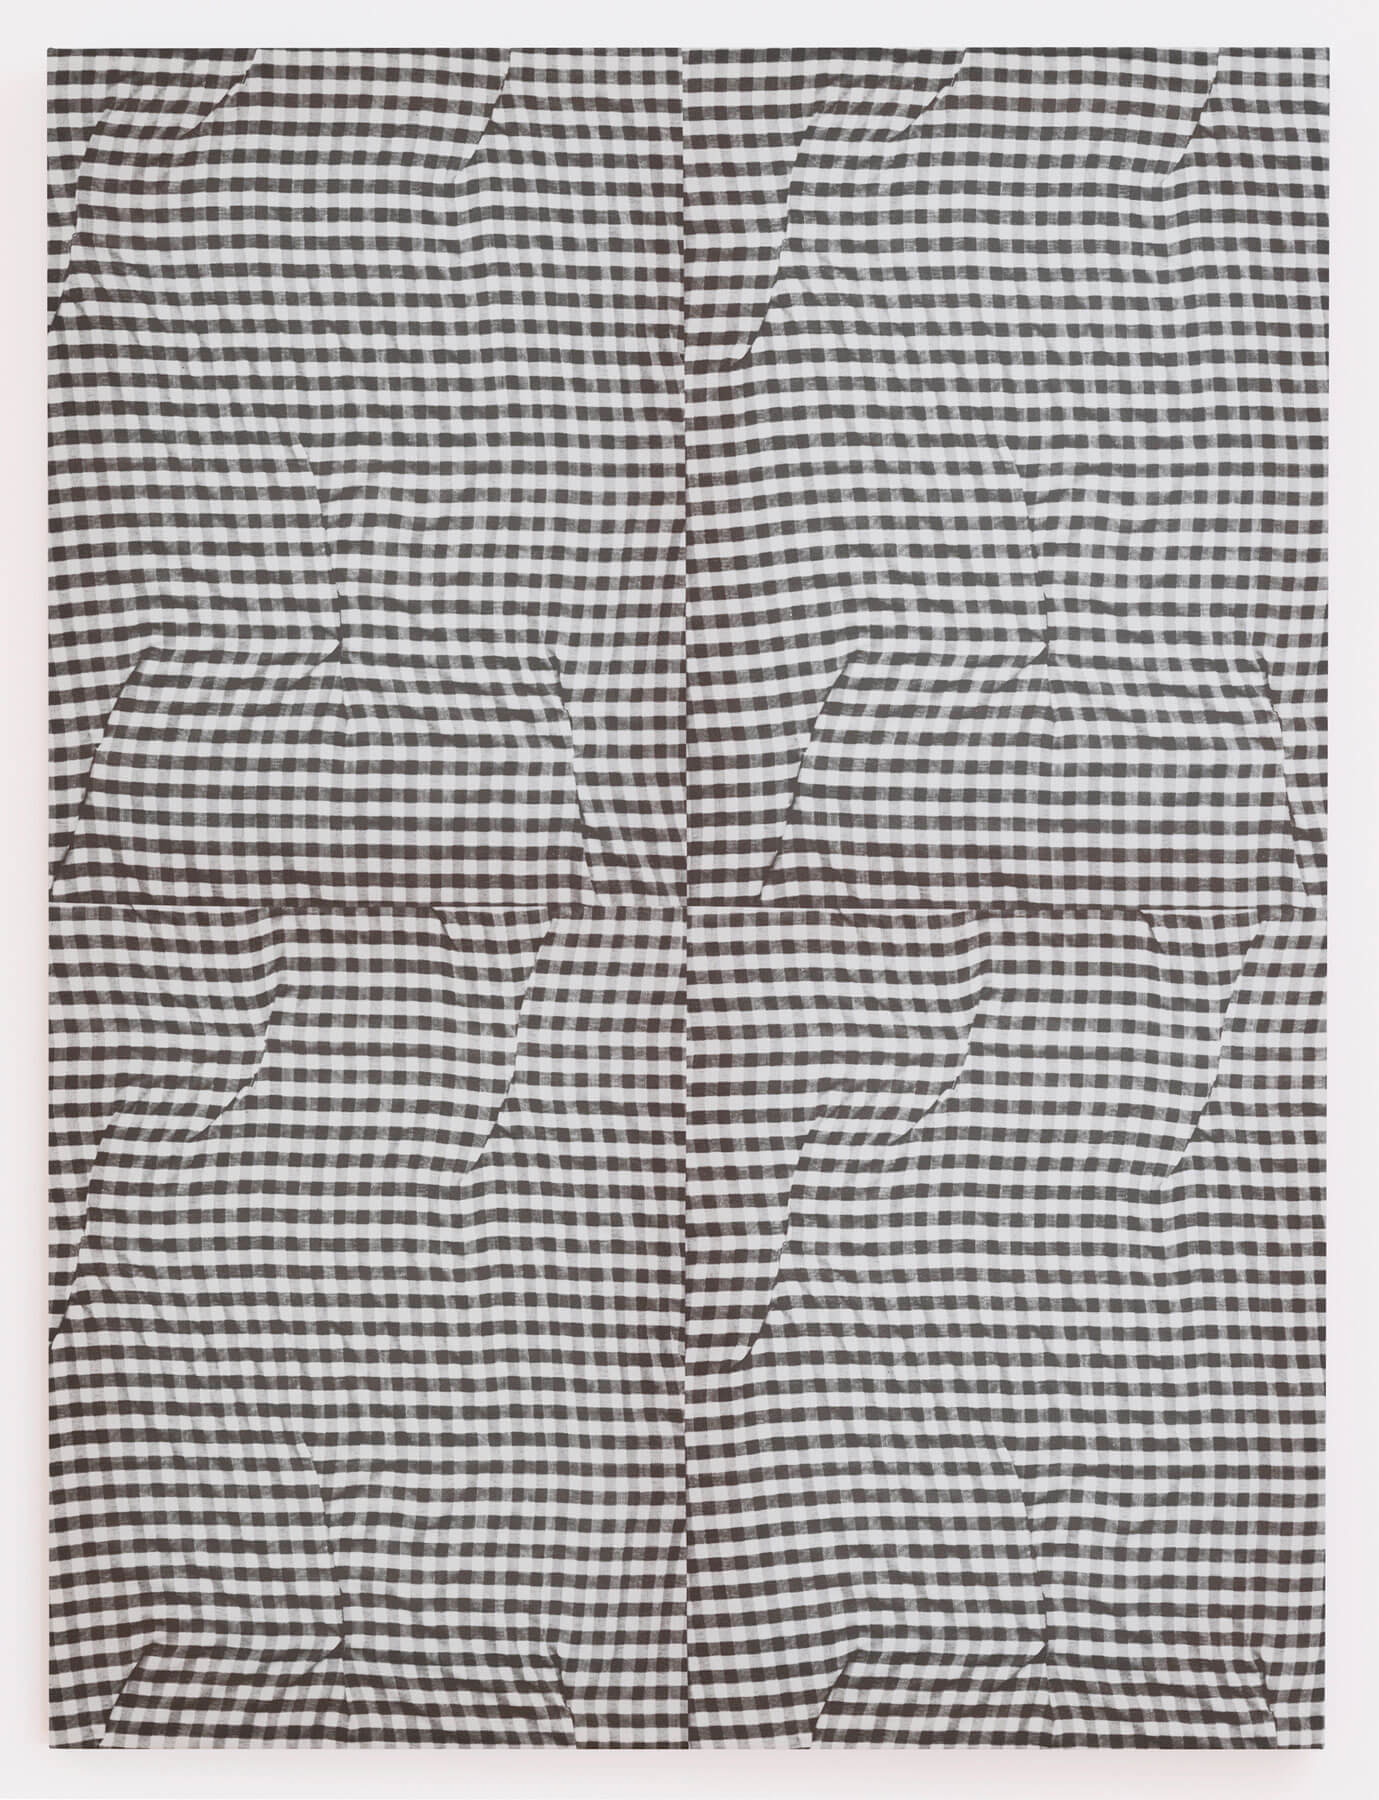 Cheryl Donegan                                             'Untitled (grey folds)', 2014                                             48 x 36 Inches                                             dyed cotton